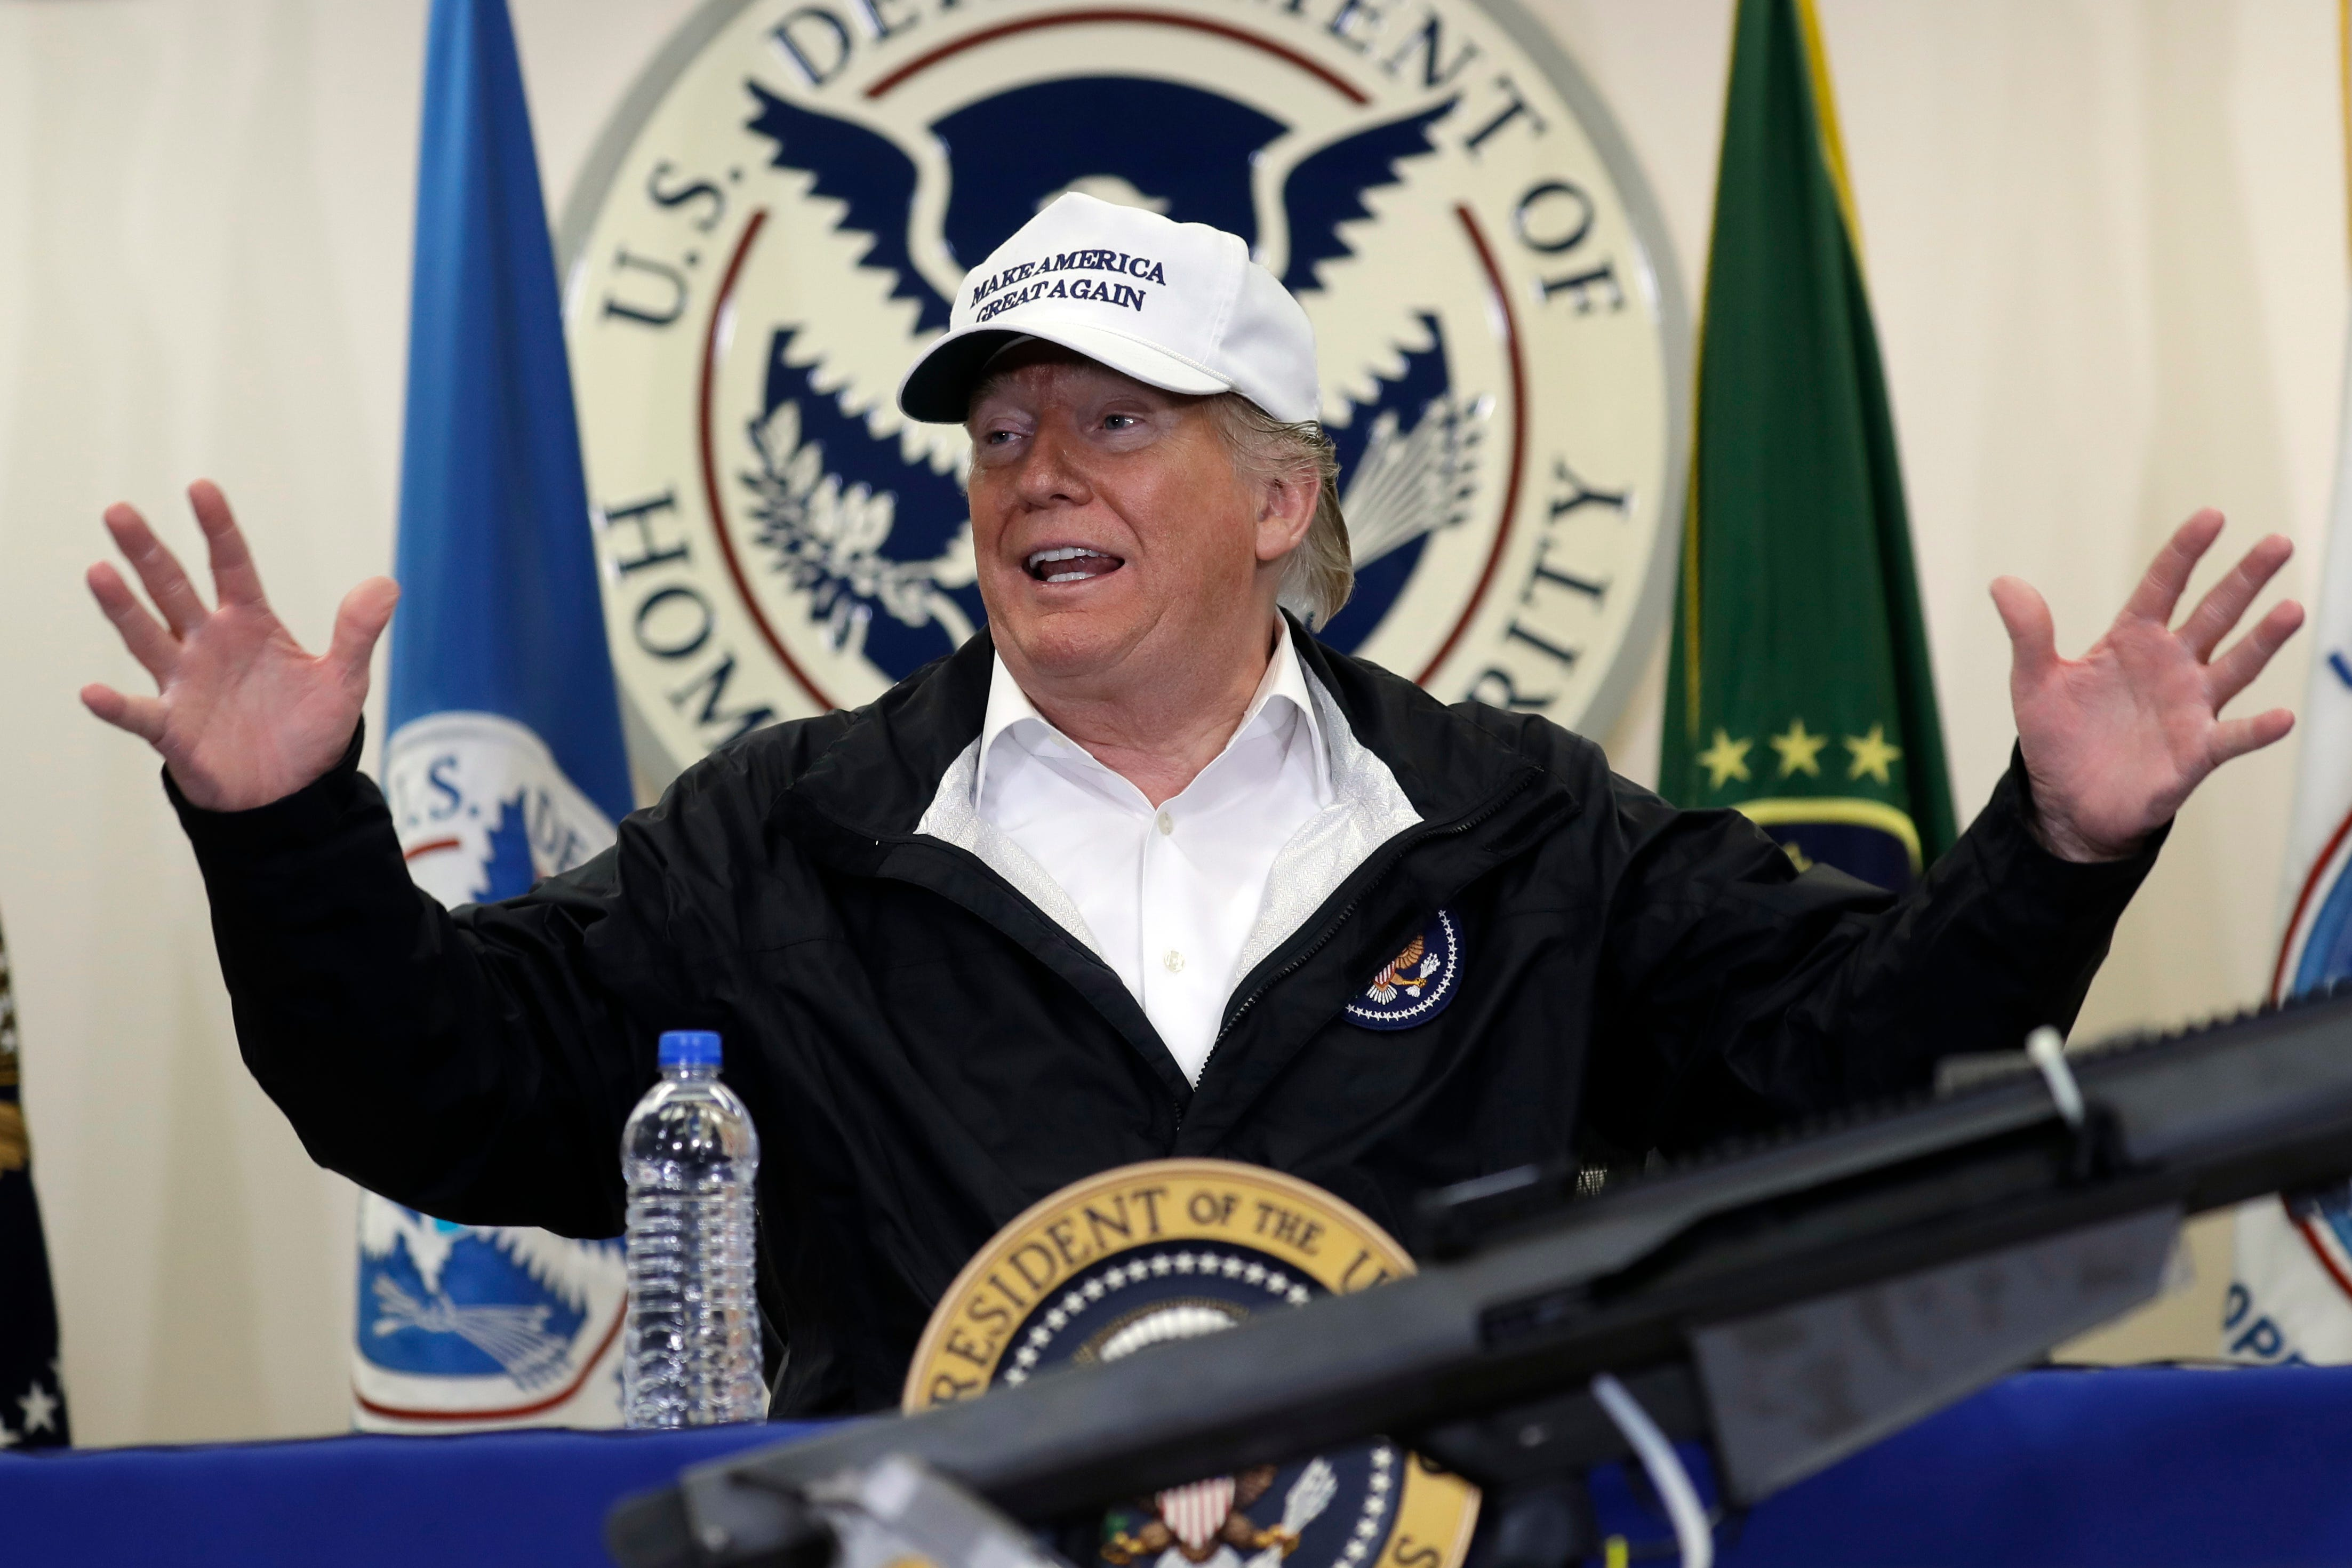 What President Trump said at the border